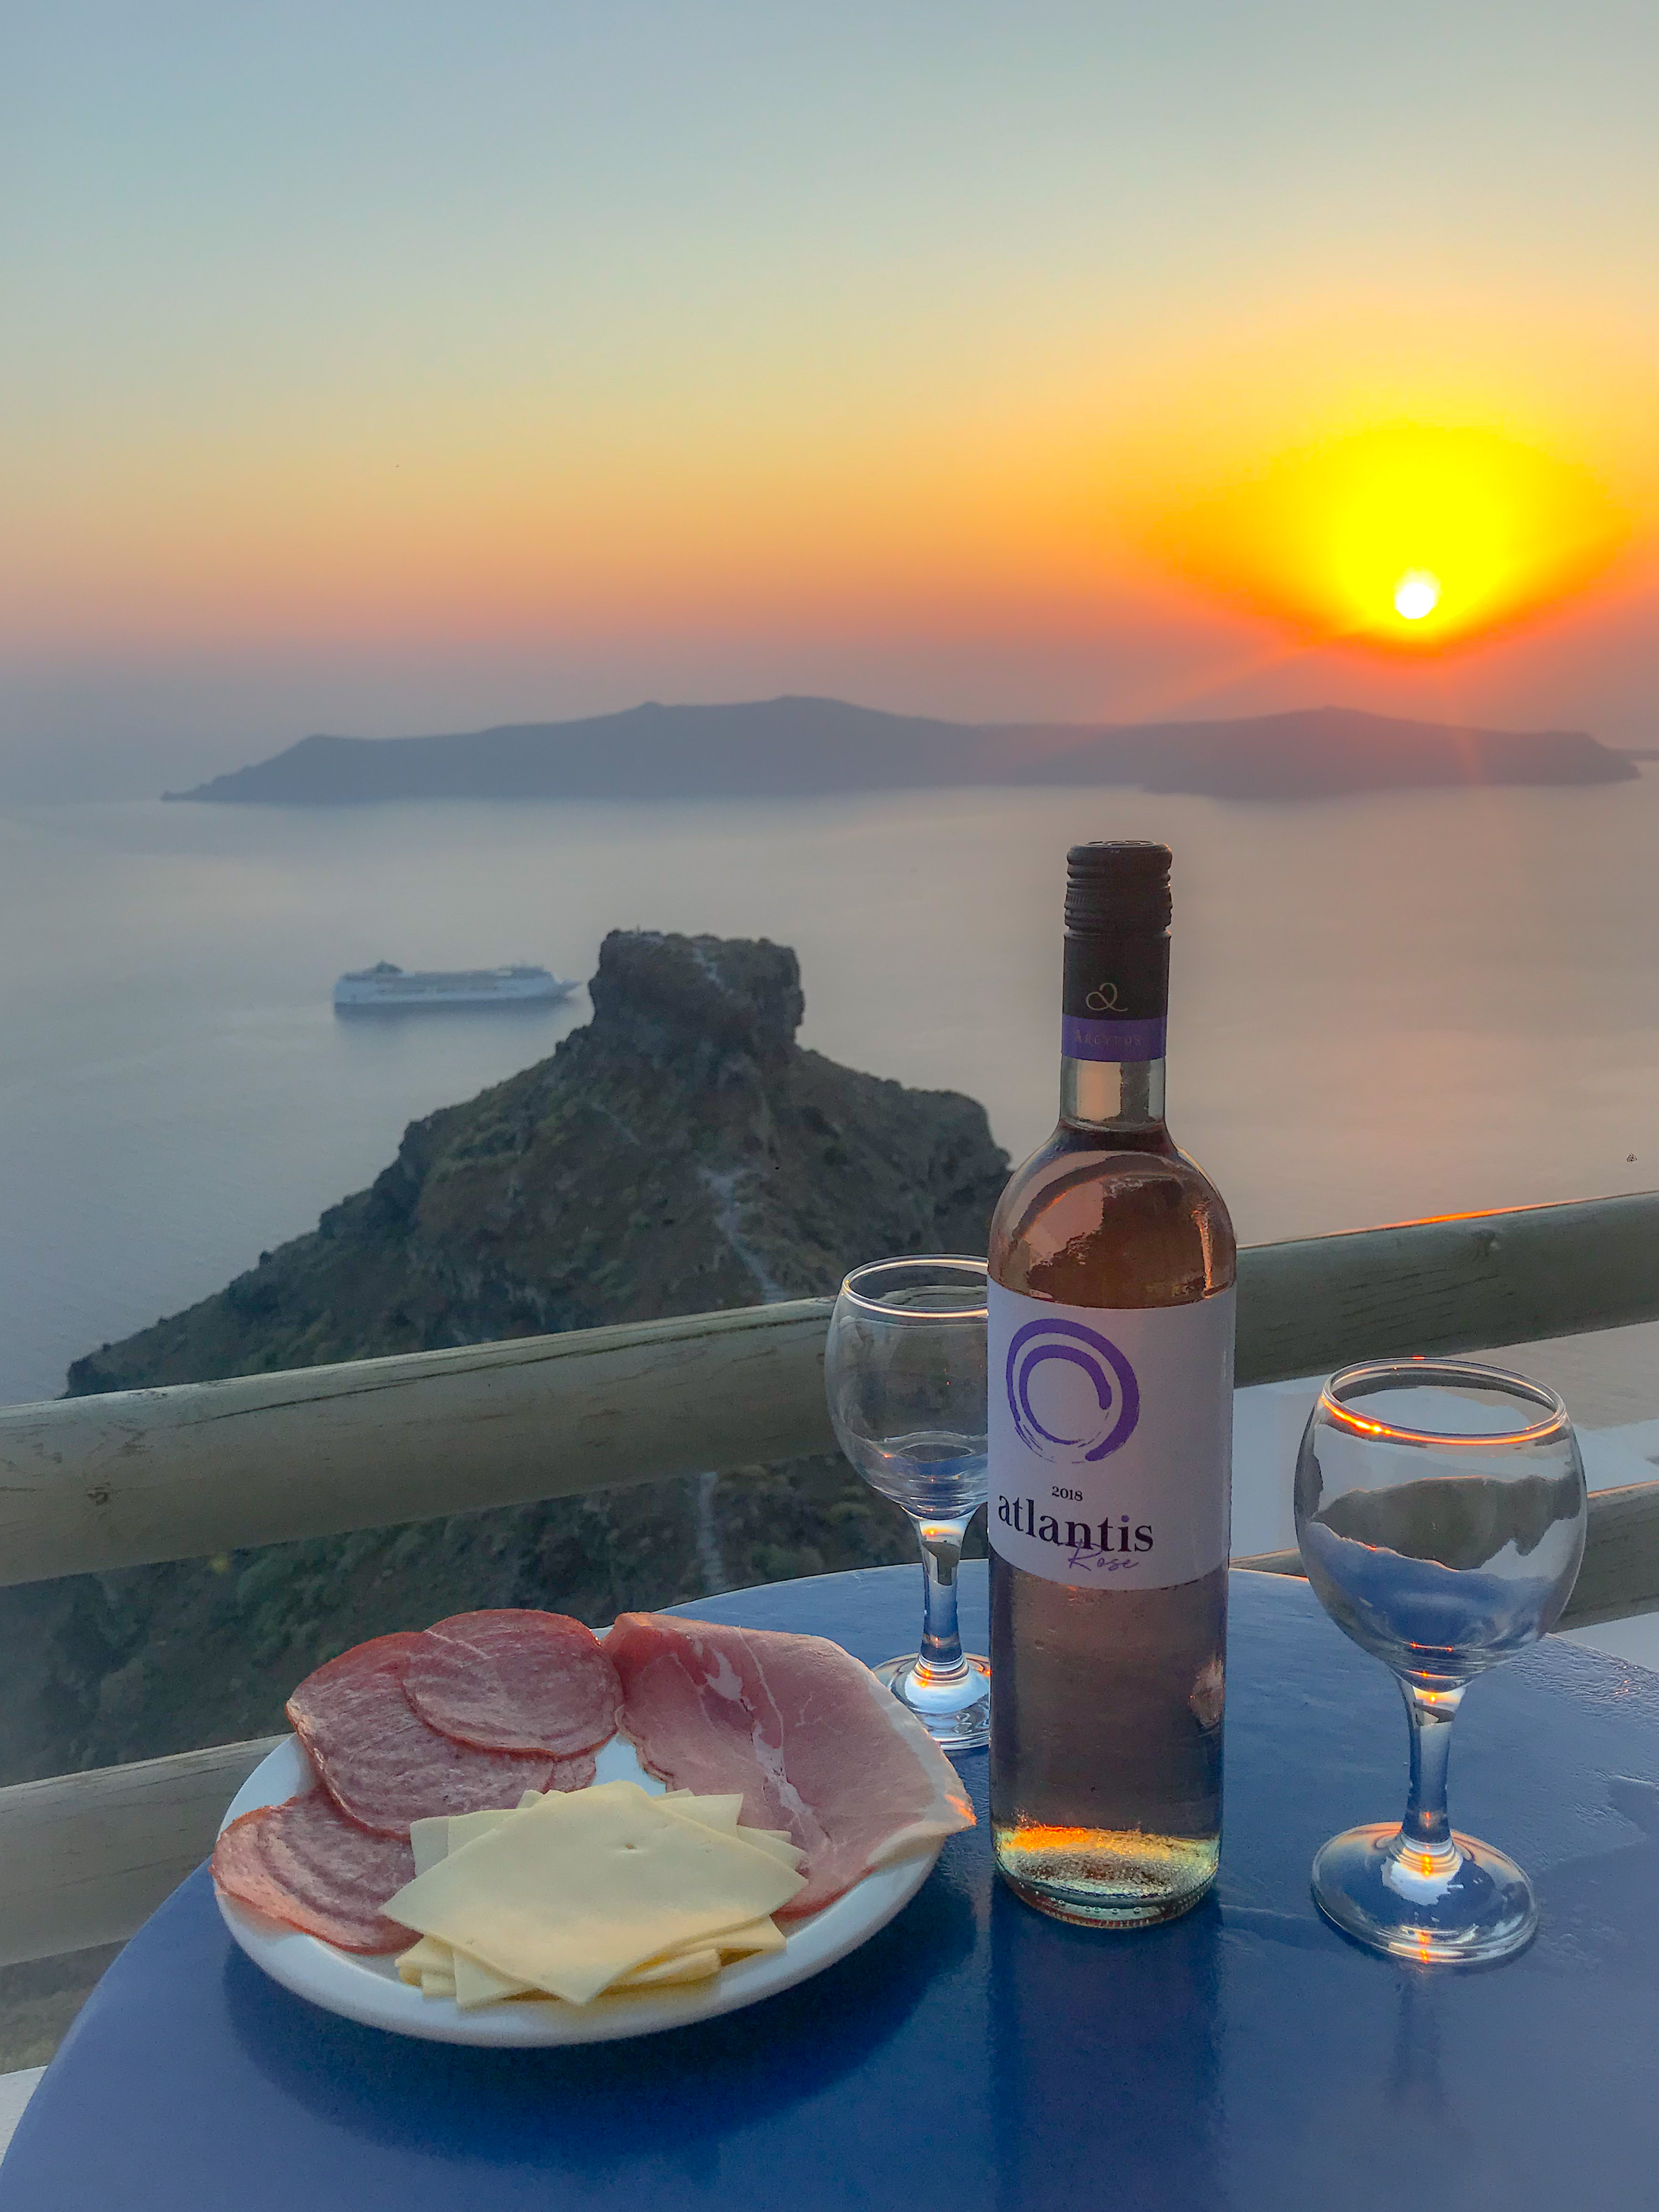 A Santorini sunset from Imerovigli with Skaros Rock in view, along with the island of Thirasia in the distance. A table with a bottle of Atlantis Rose wine, 2 wine glasses and a charcuterie plate are in the foreground.